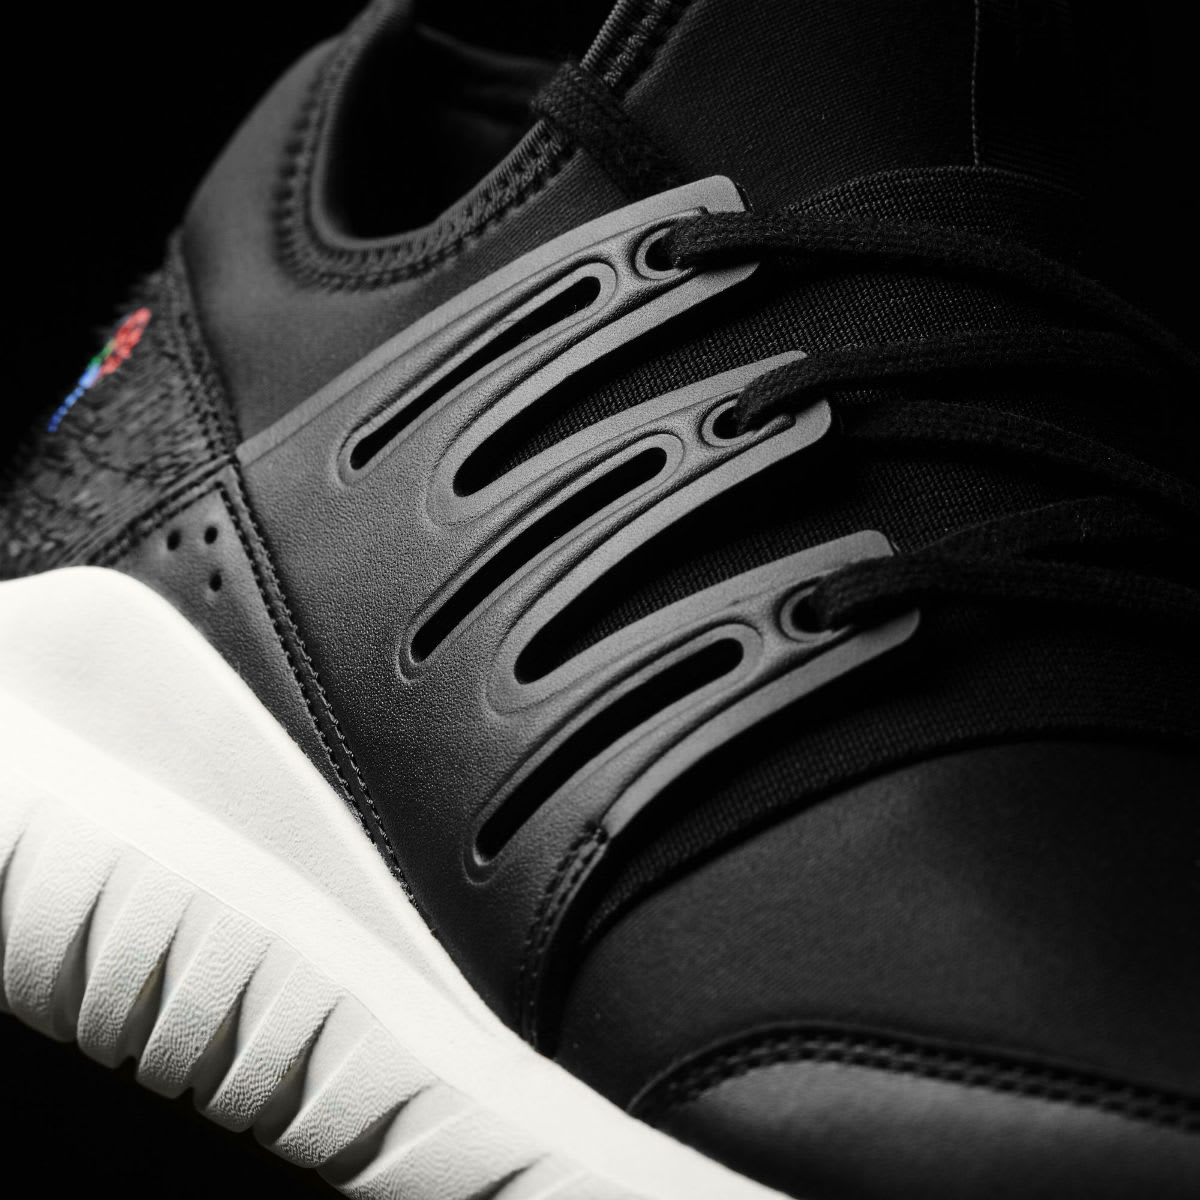 Adidas Tubular Radial CNY Year of the Rooster Release Date Cage BA7780